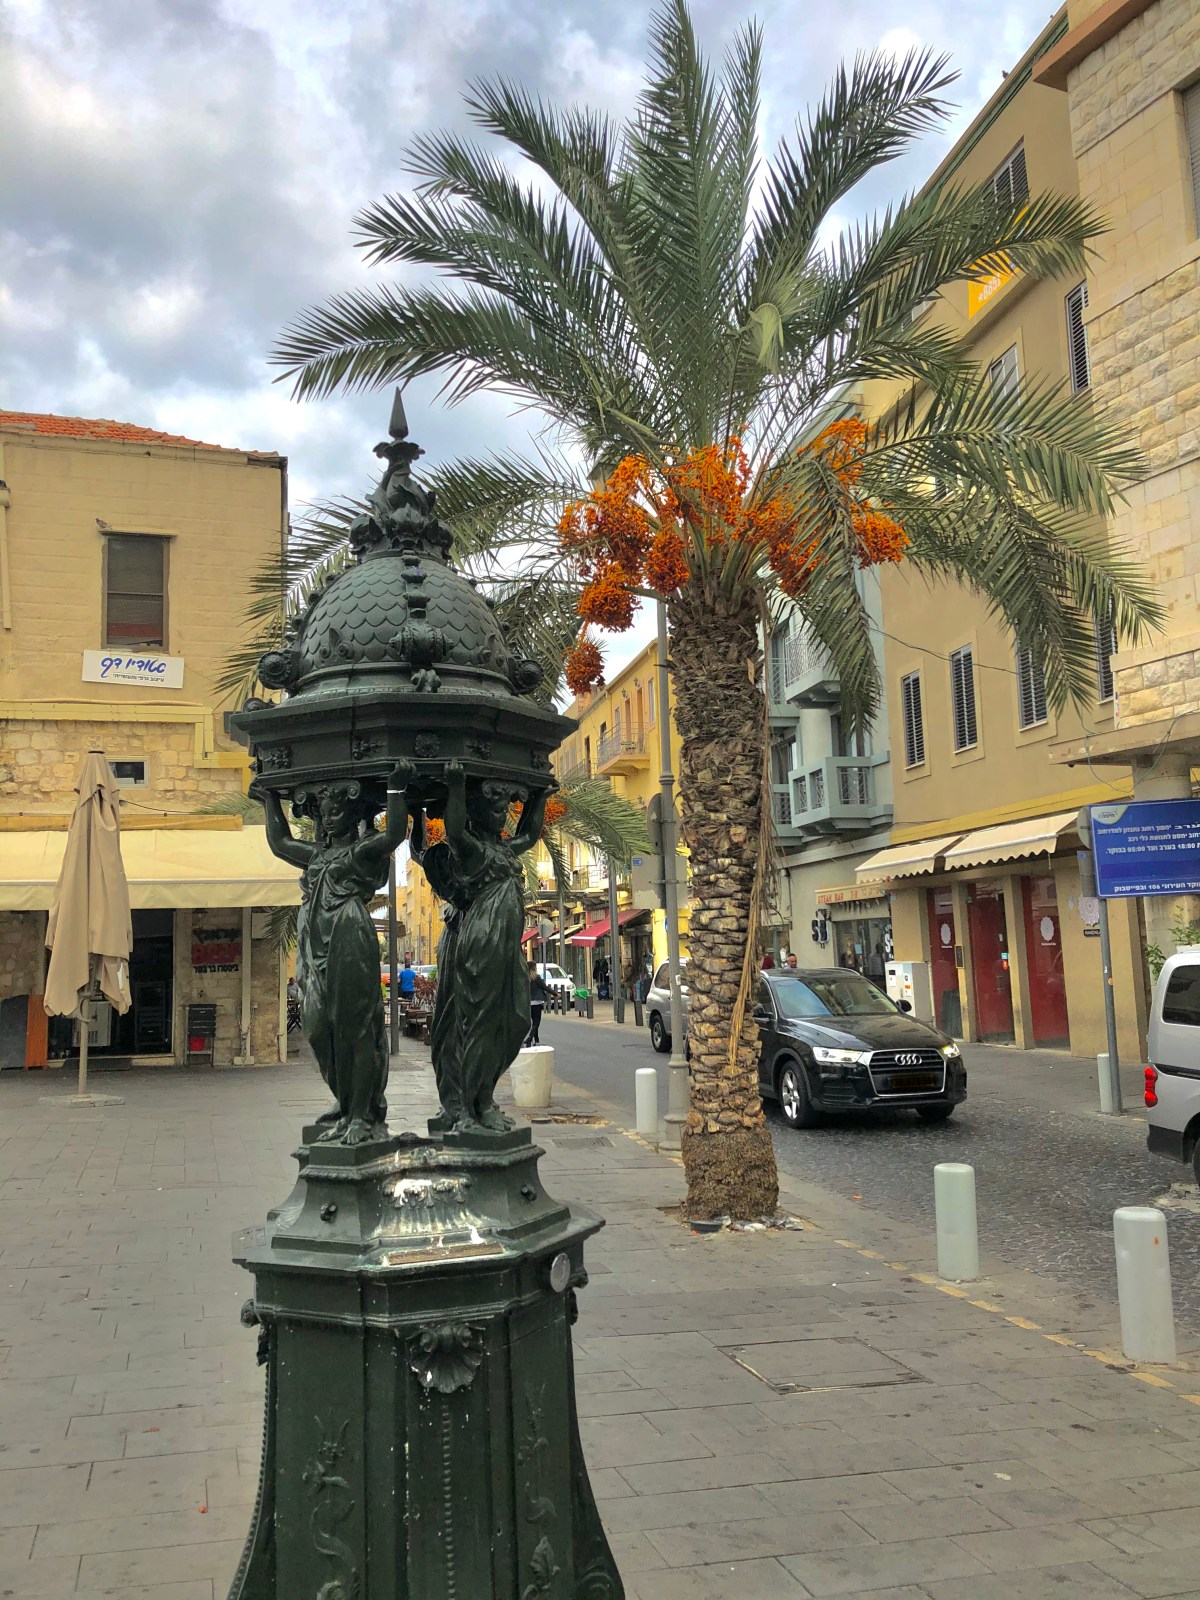 Paris Square, Haifa